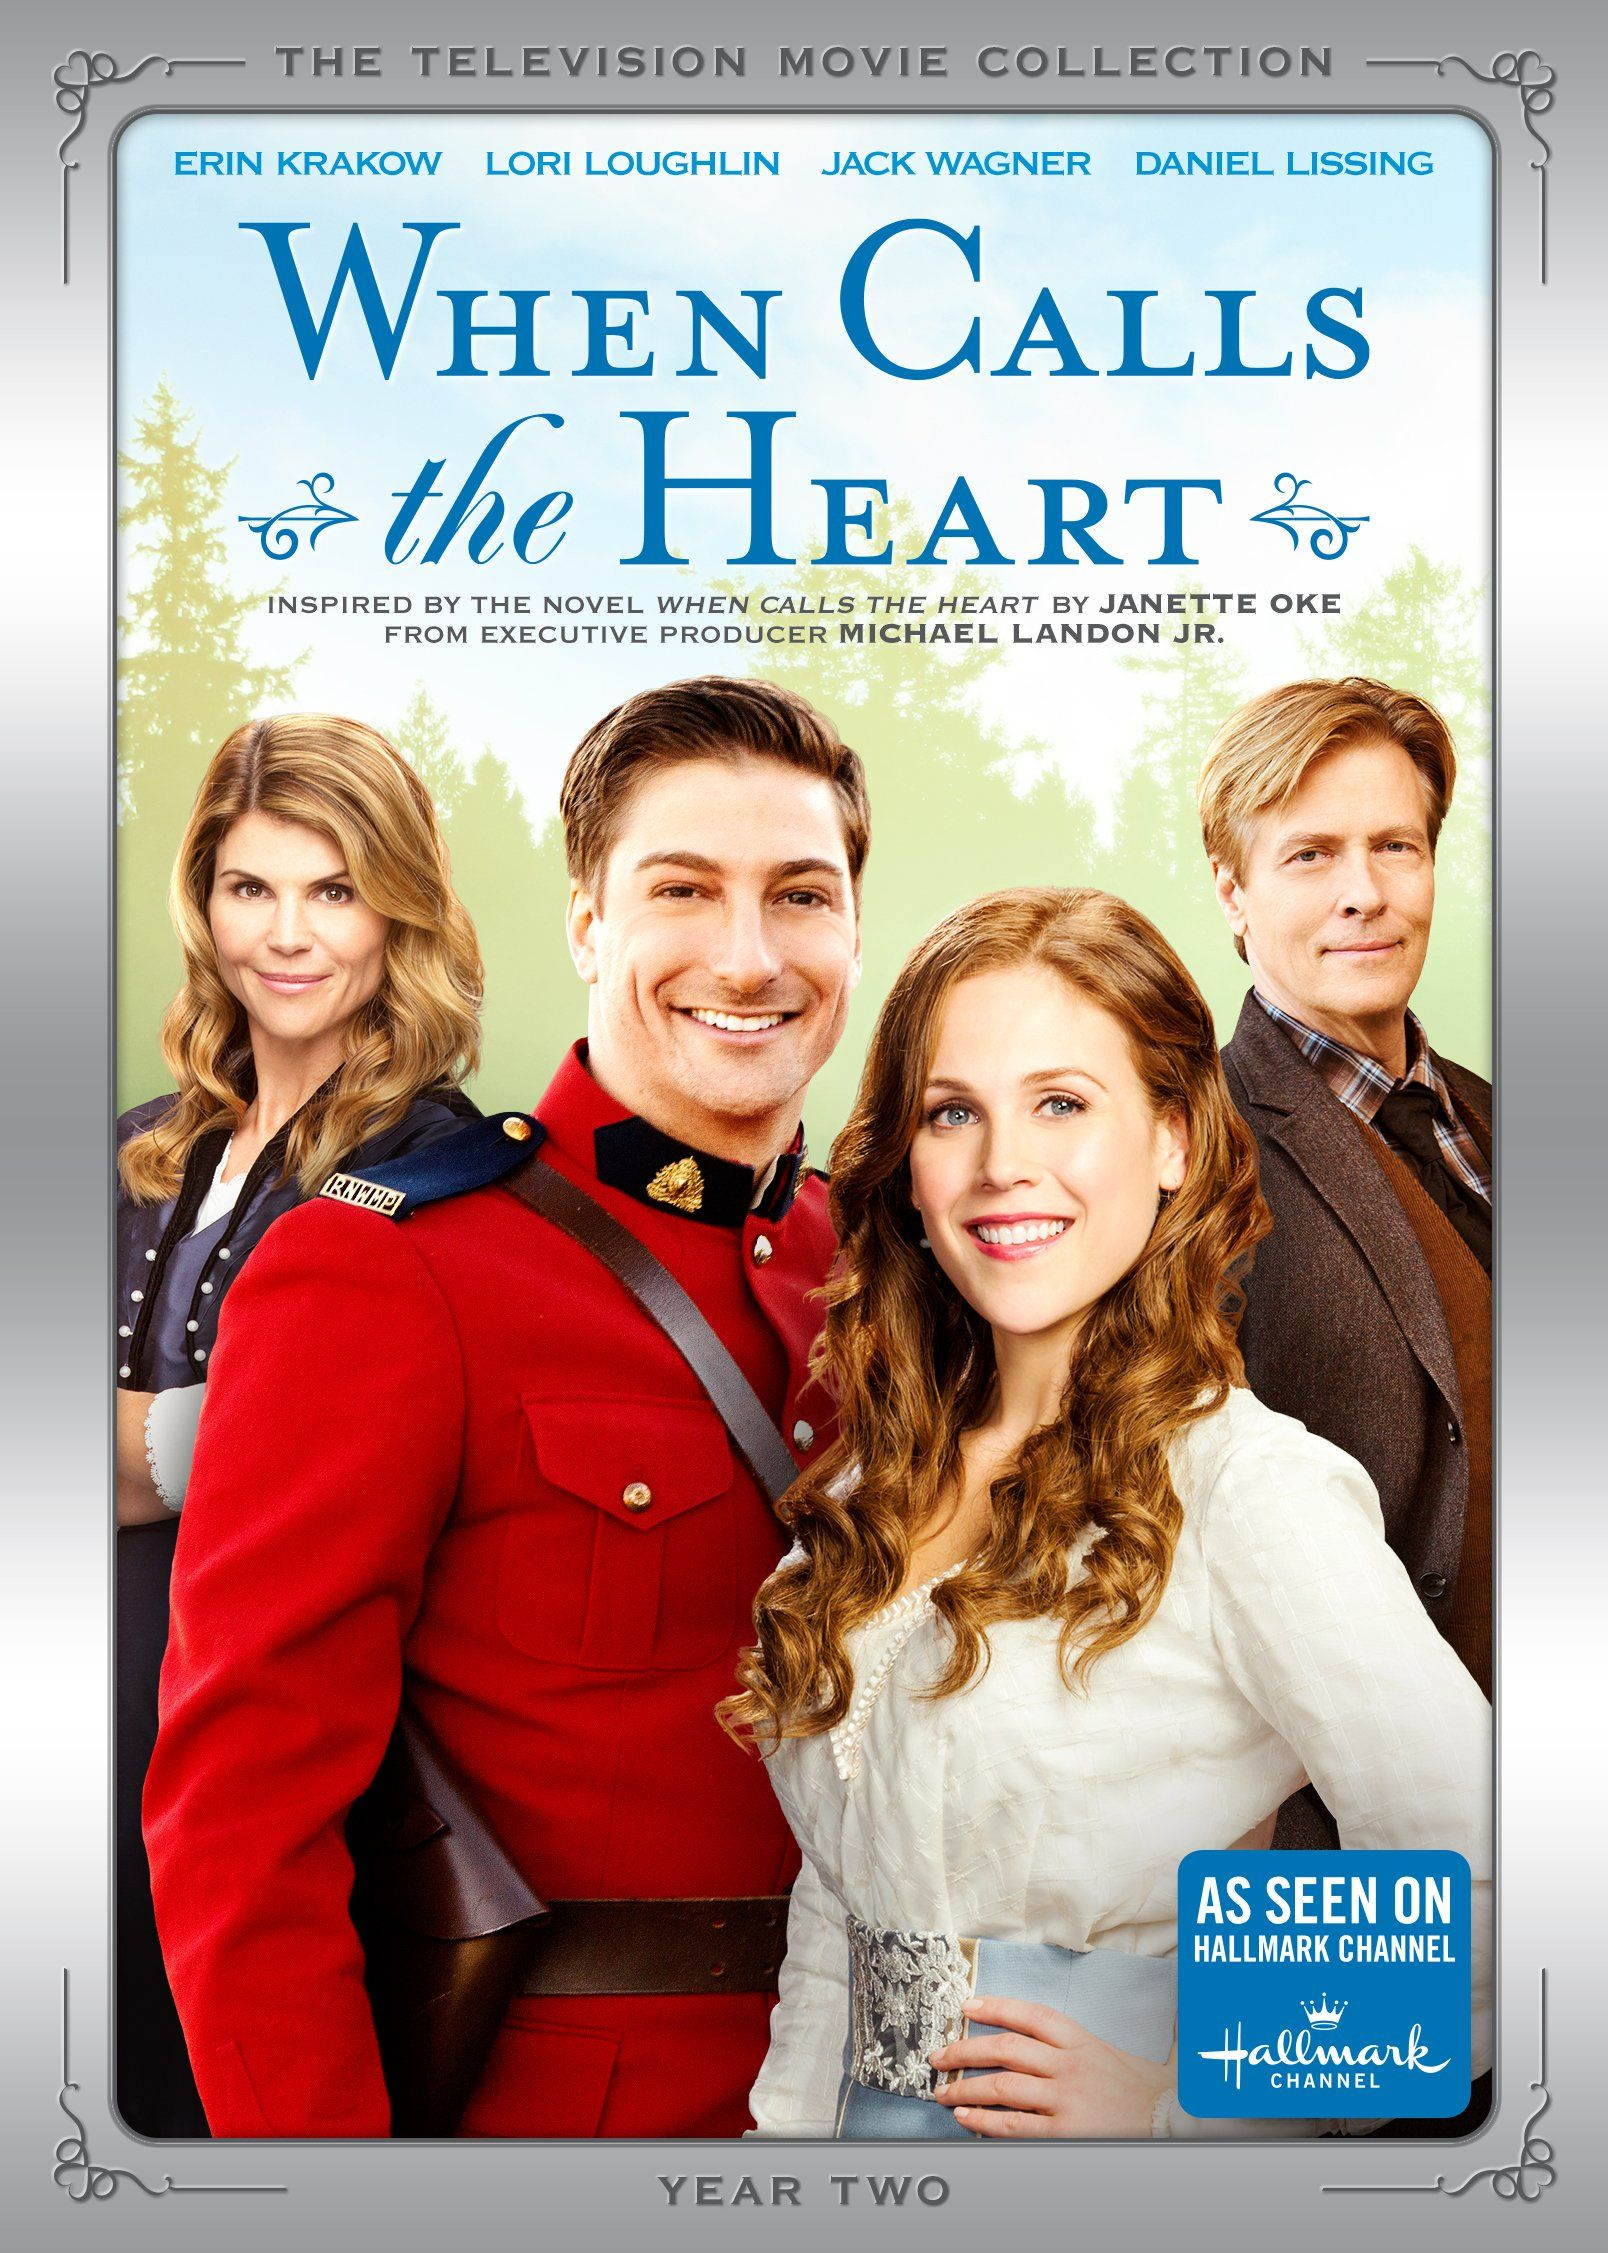 When Calls The Heart Year Two [The Television Movie